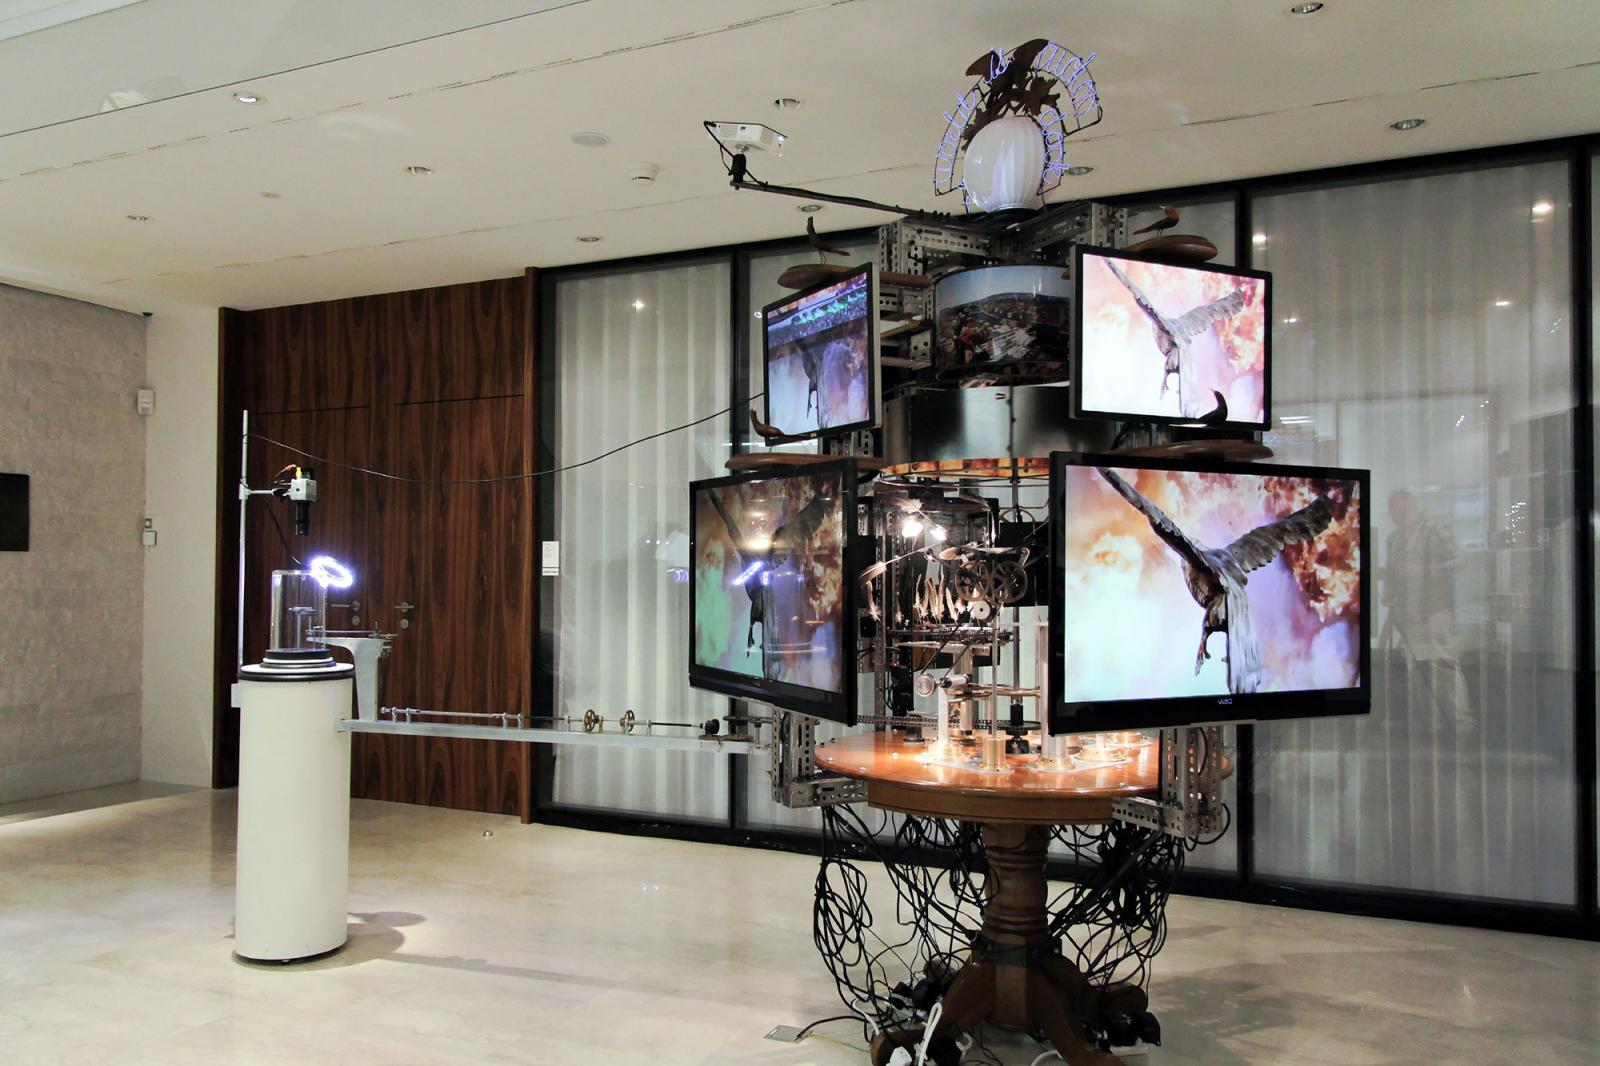 Jon Kessler Installation view /The World Is Cuckoo /at Les Ambassadeurs watch shop Photo: Manifesta 11 / Wolfgang Träger